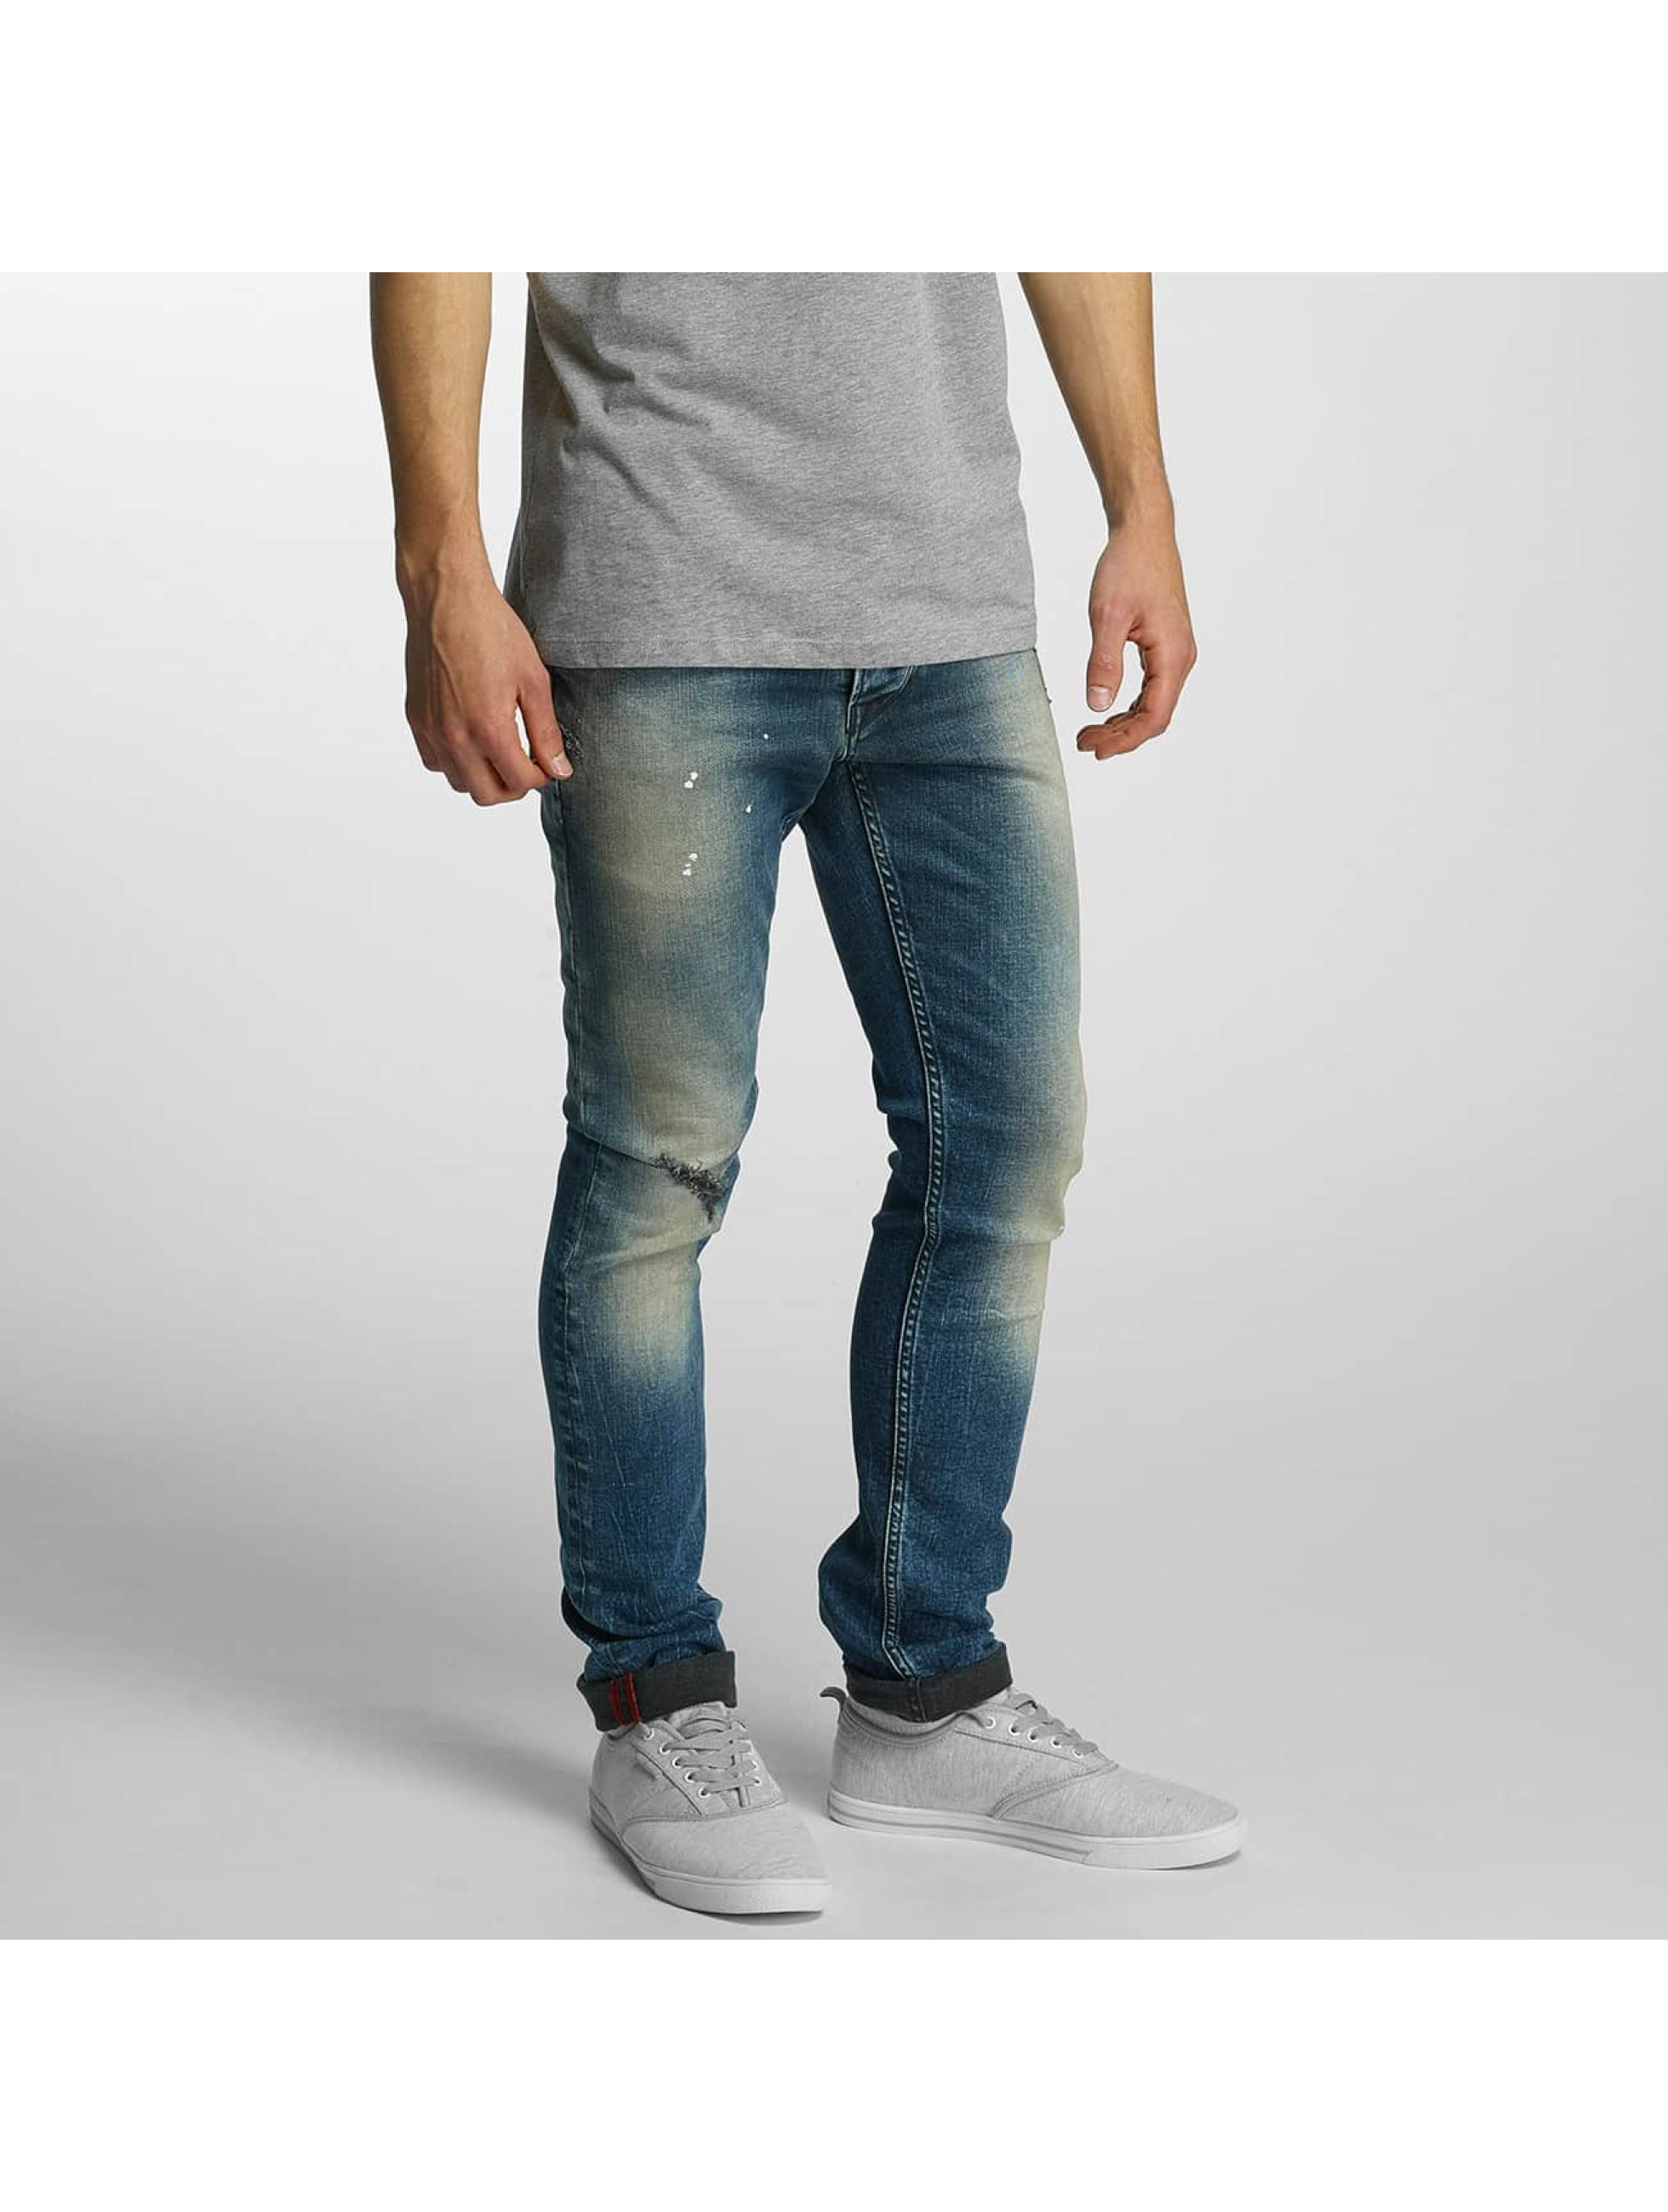 Solid Männer Straight Fit Jeans Slim in blau